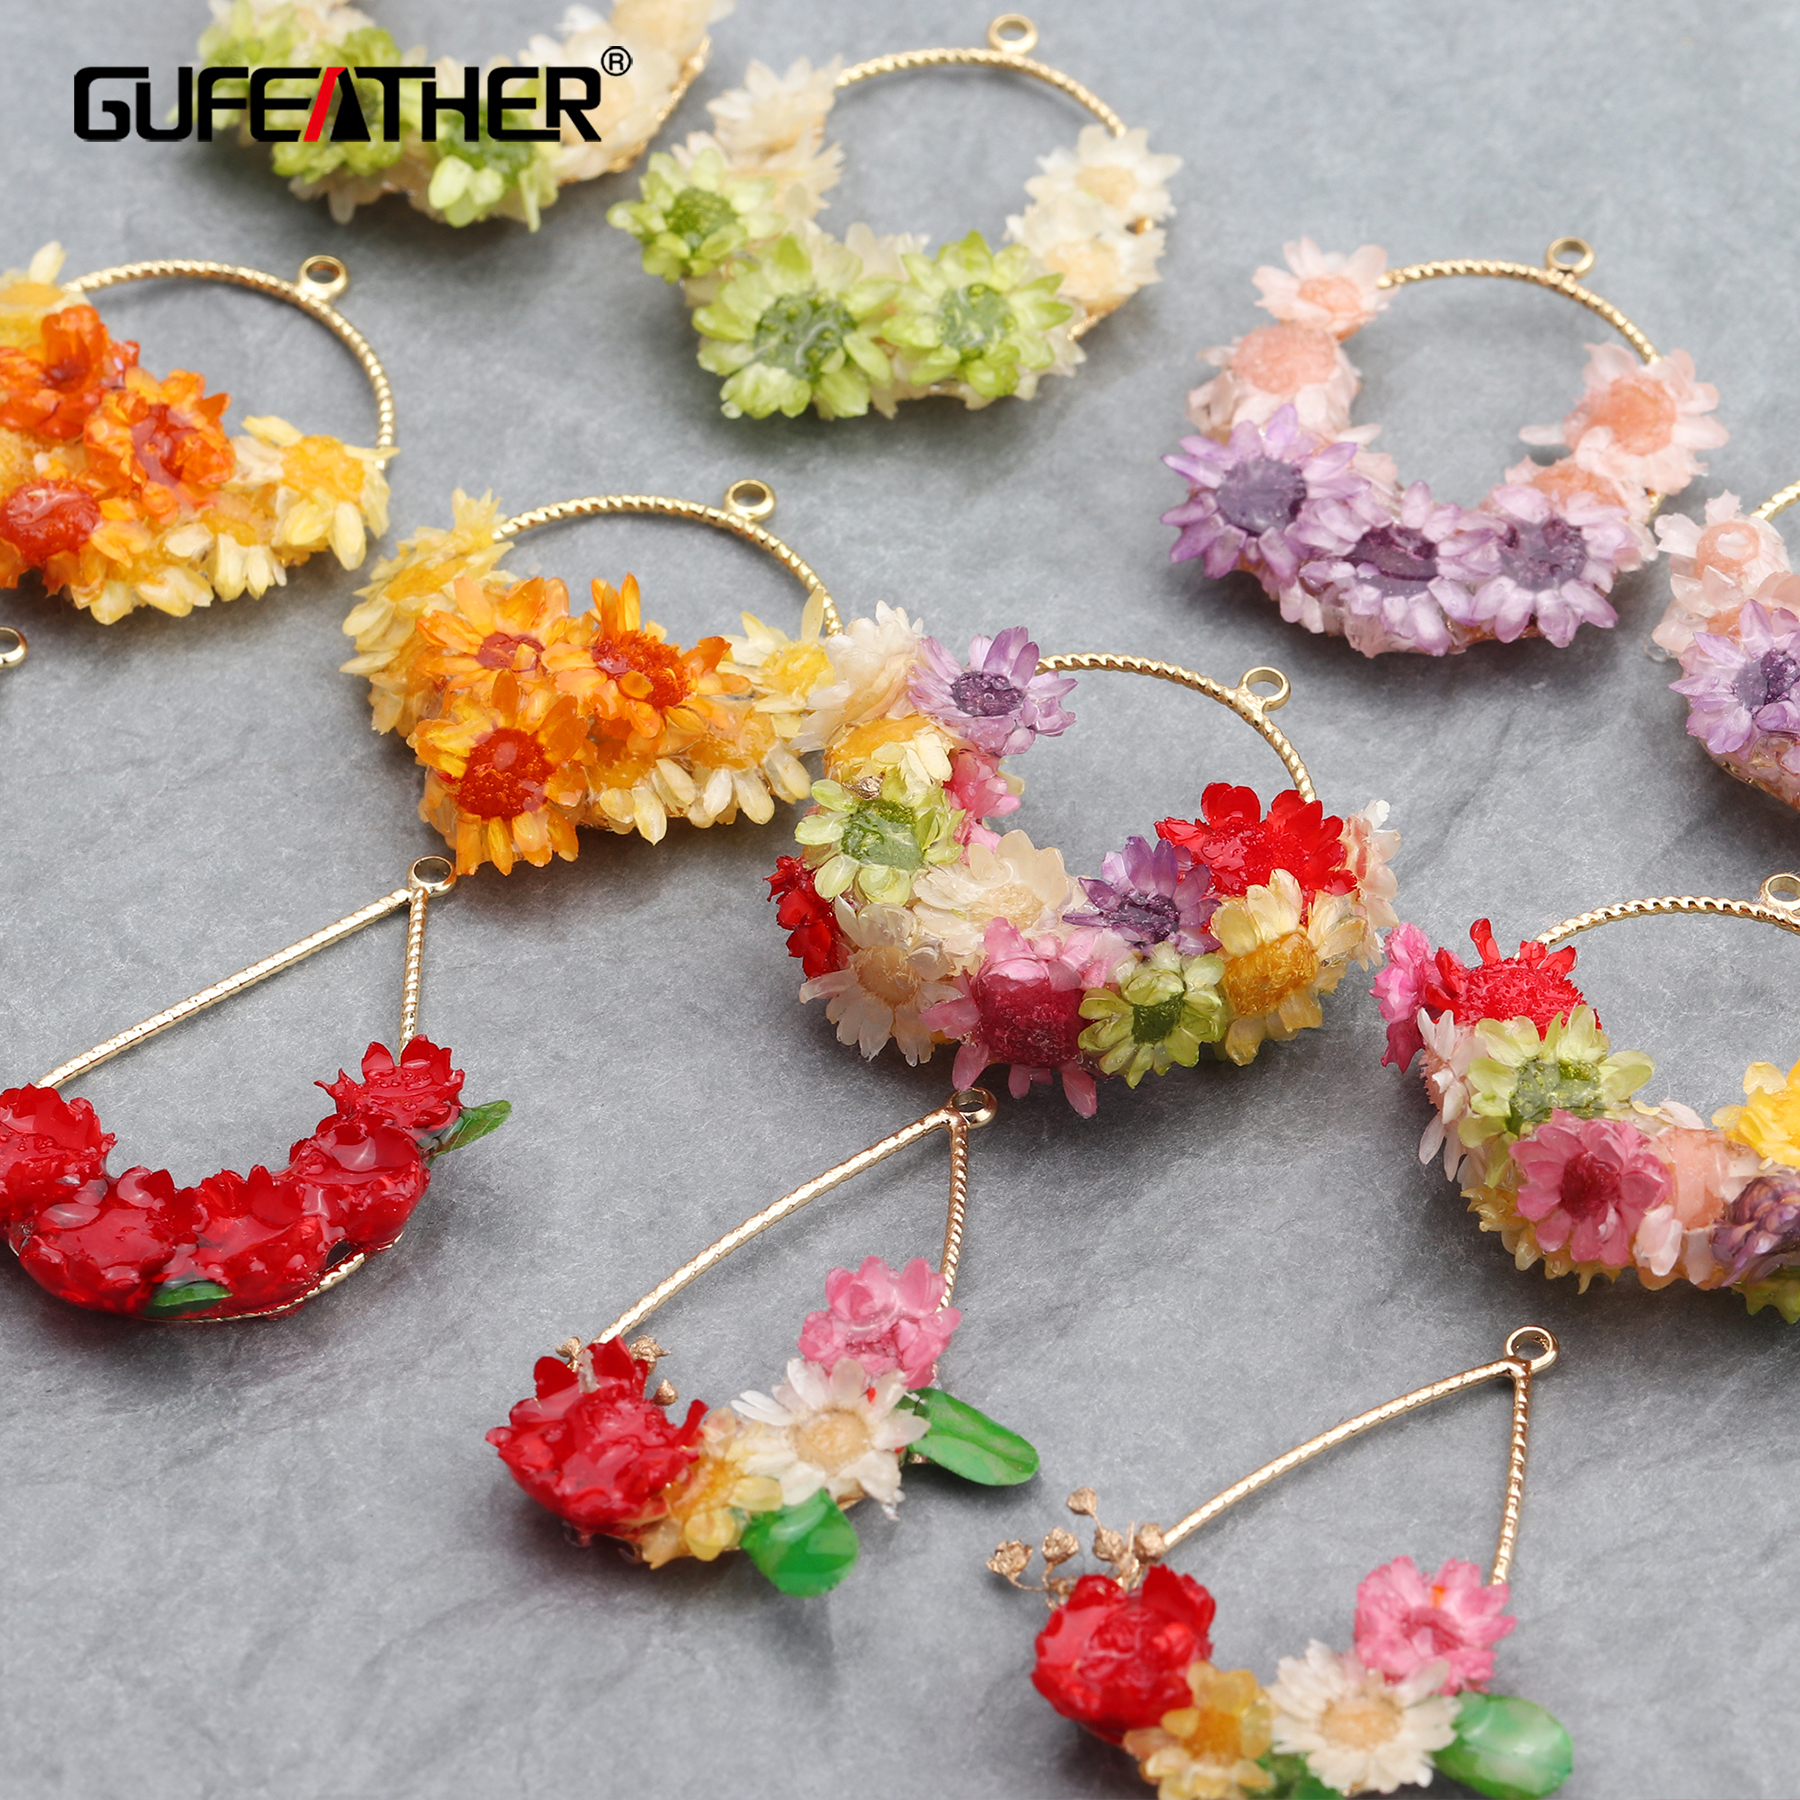 GUFEATHER M623,jewelry Accessories,18k Gold Plated,dried Flower,diy Pendant,copper Metal,diy Earrings,jewelry Making,4pcs/lot